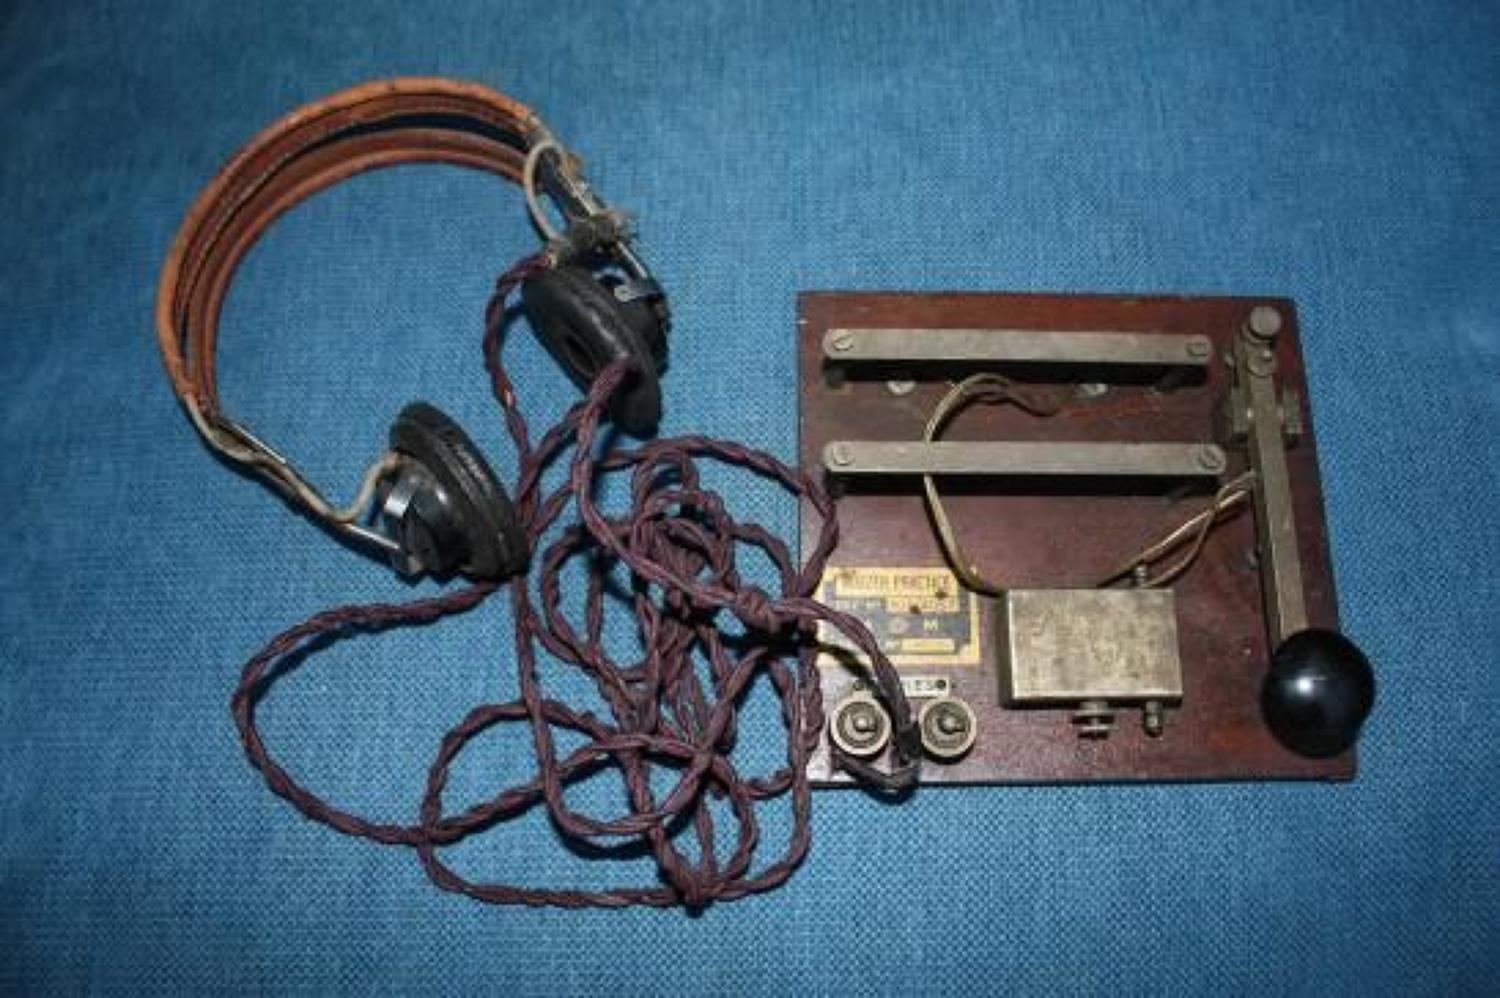 ORIGINAL WW2 ERA RAF RADIO HEADPHONES, MORSE CODE KEY